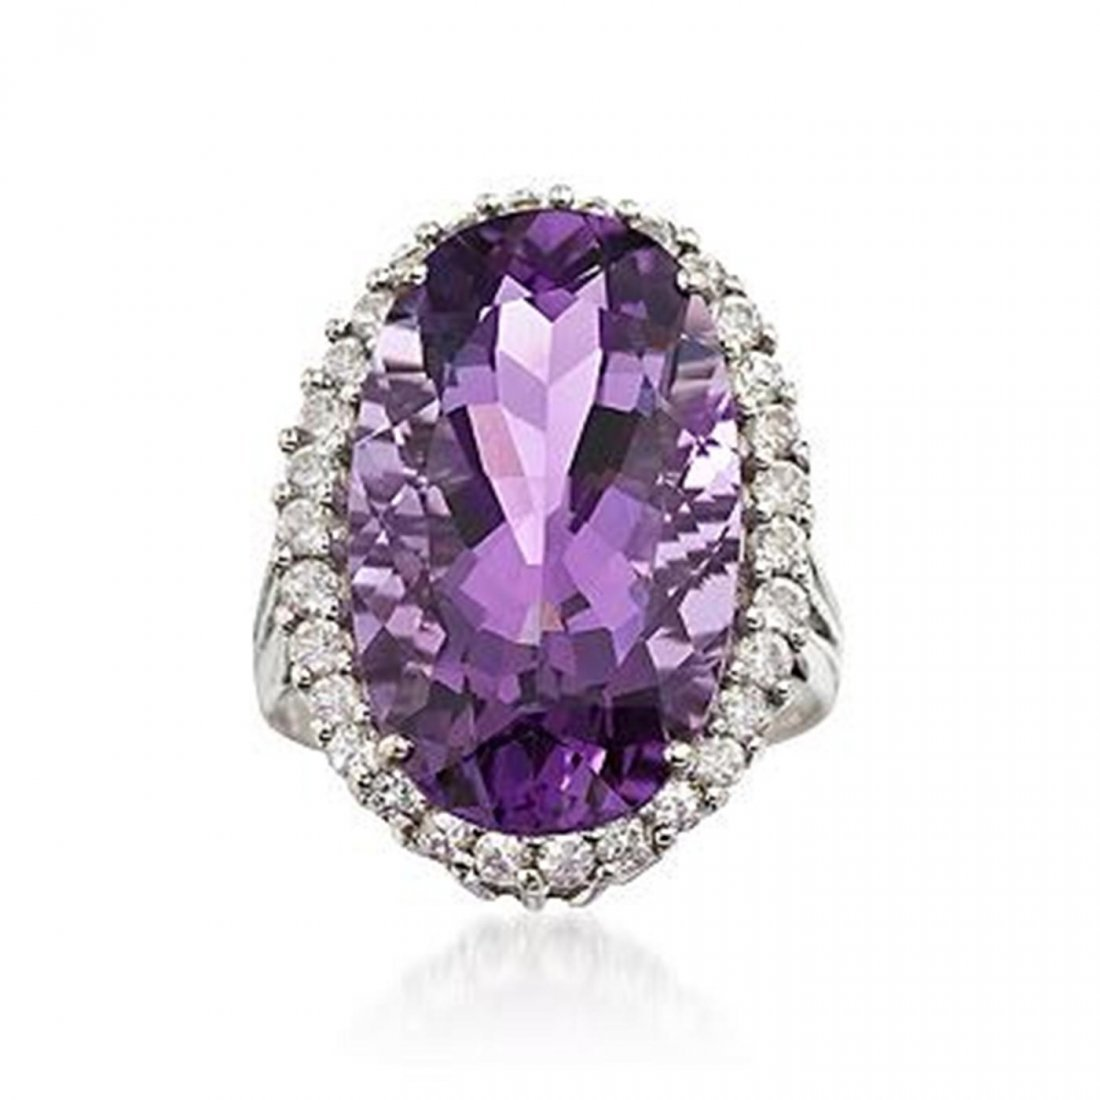 .50 ct. t.w. White Topaz and 11.00 Carat Amethyst